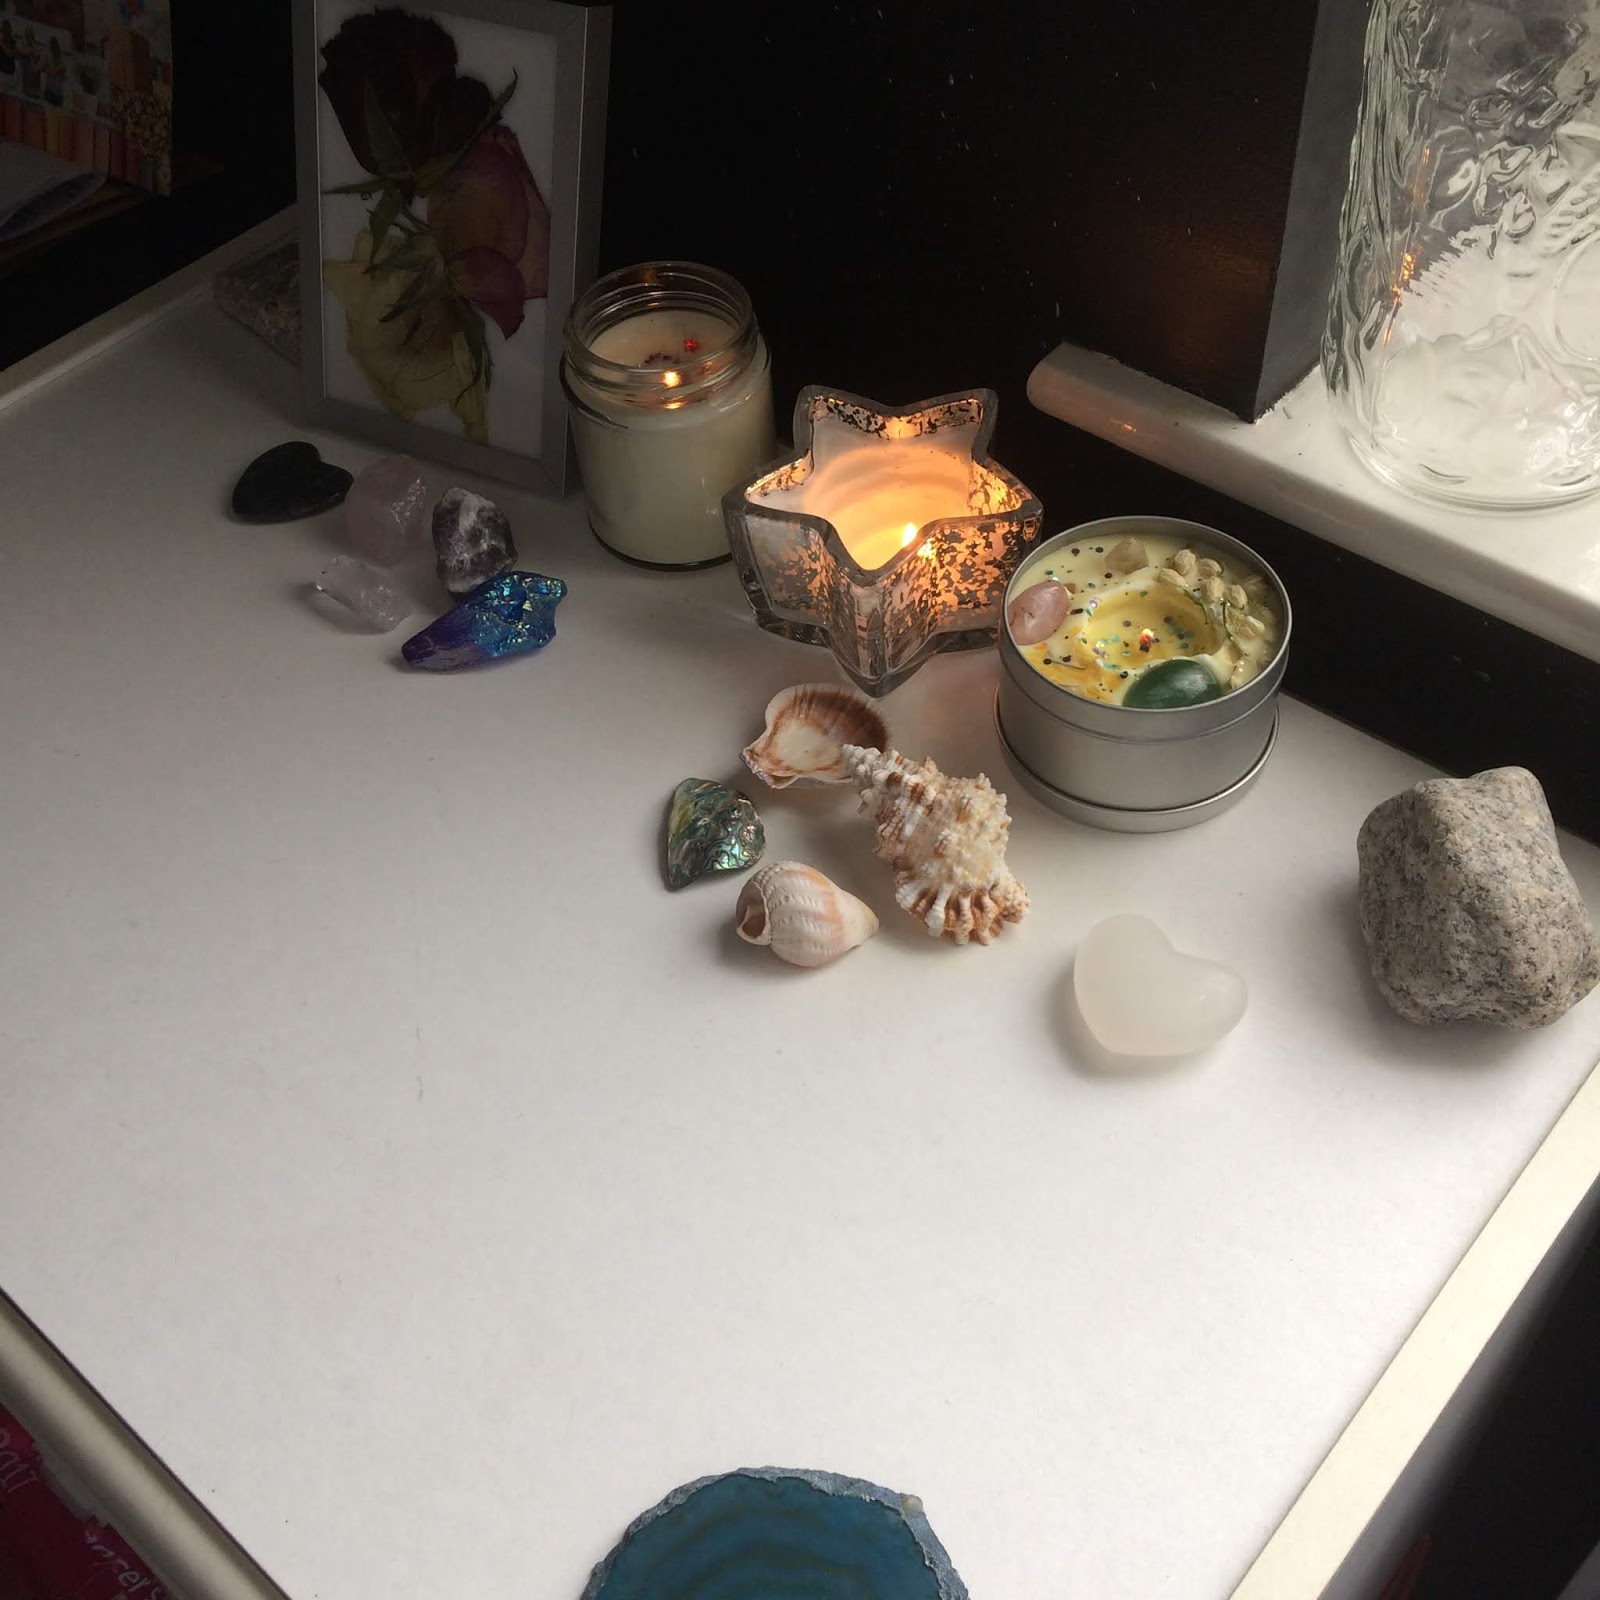 A photo, taken from a diagonal position, of my everyday altar, with my three lit container candles, including the Ostara candle, a small collection of crystals and shells, and a pressed roses in a frame